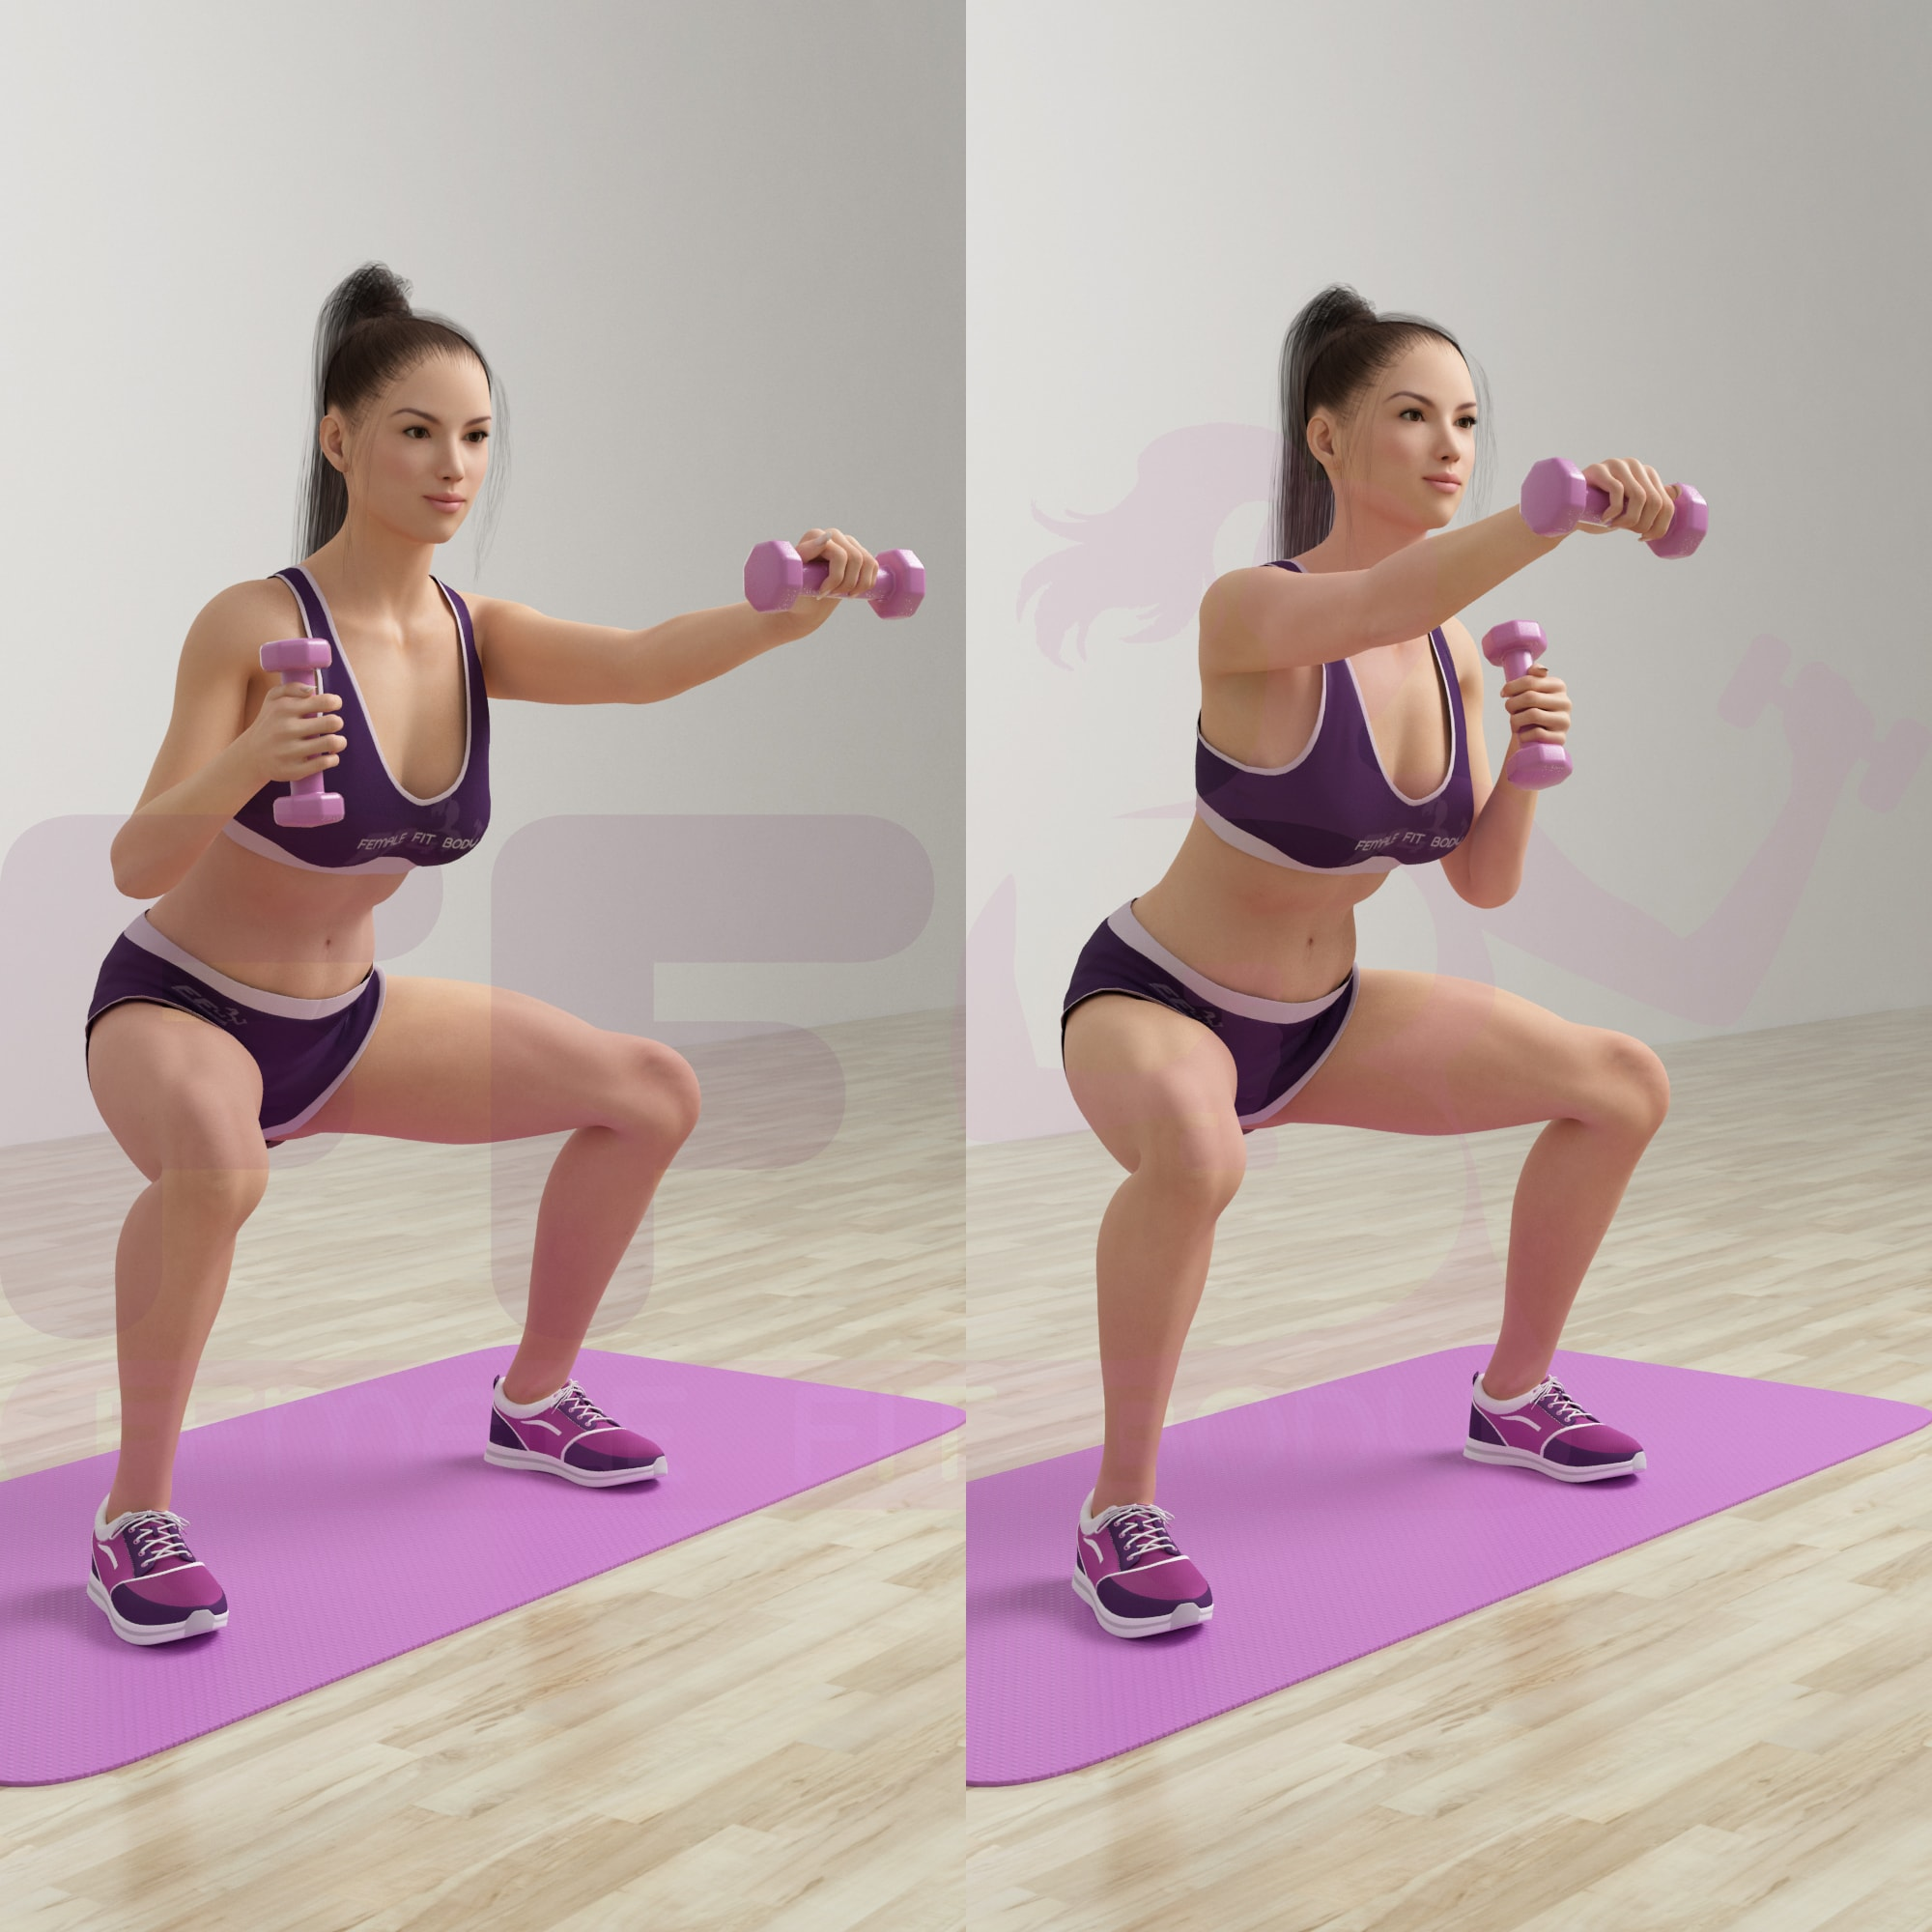 20-Second Squat Hold: